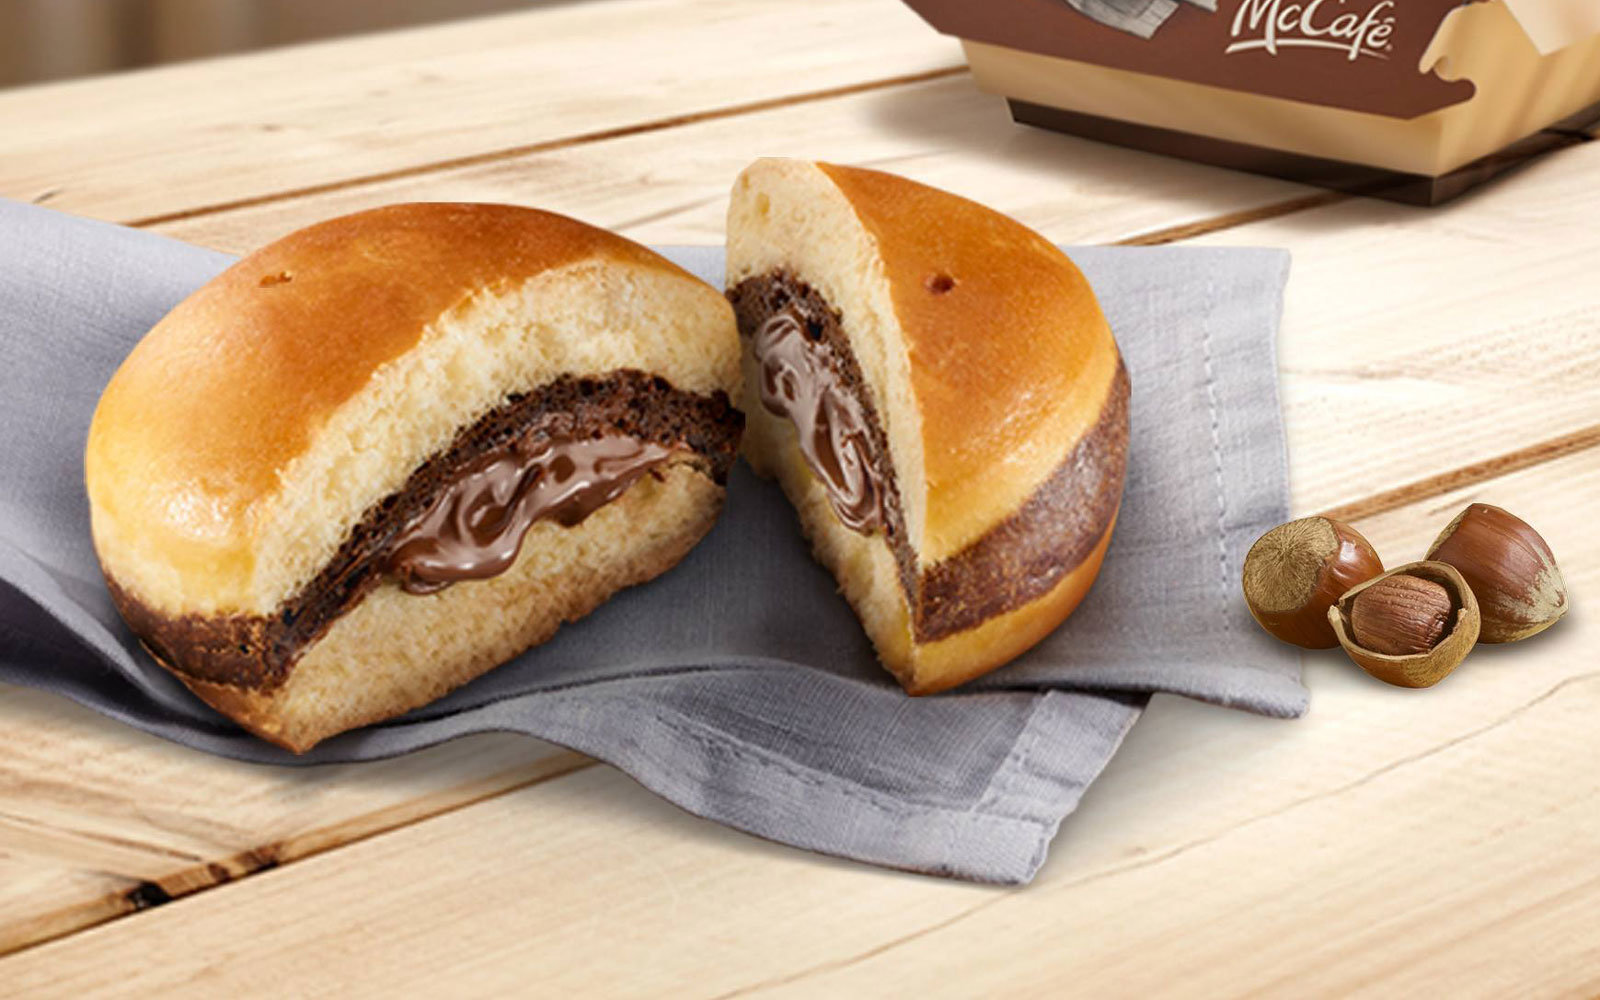 Nutella. In a burger.